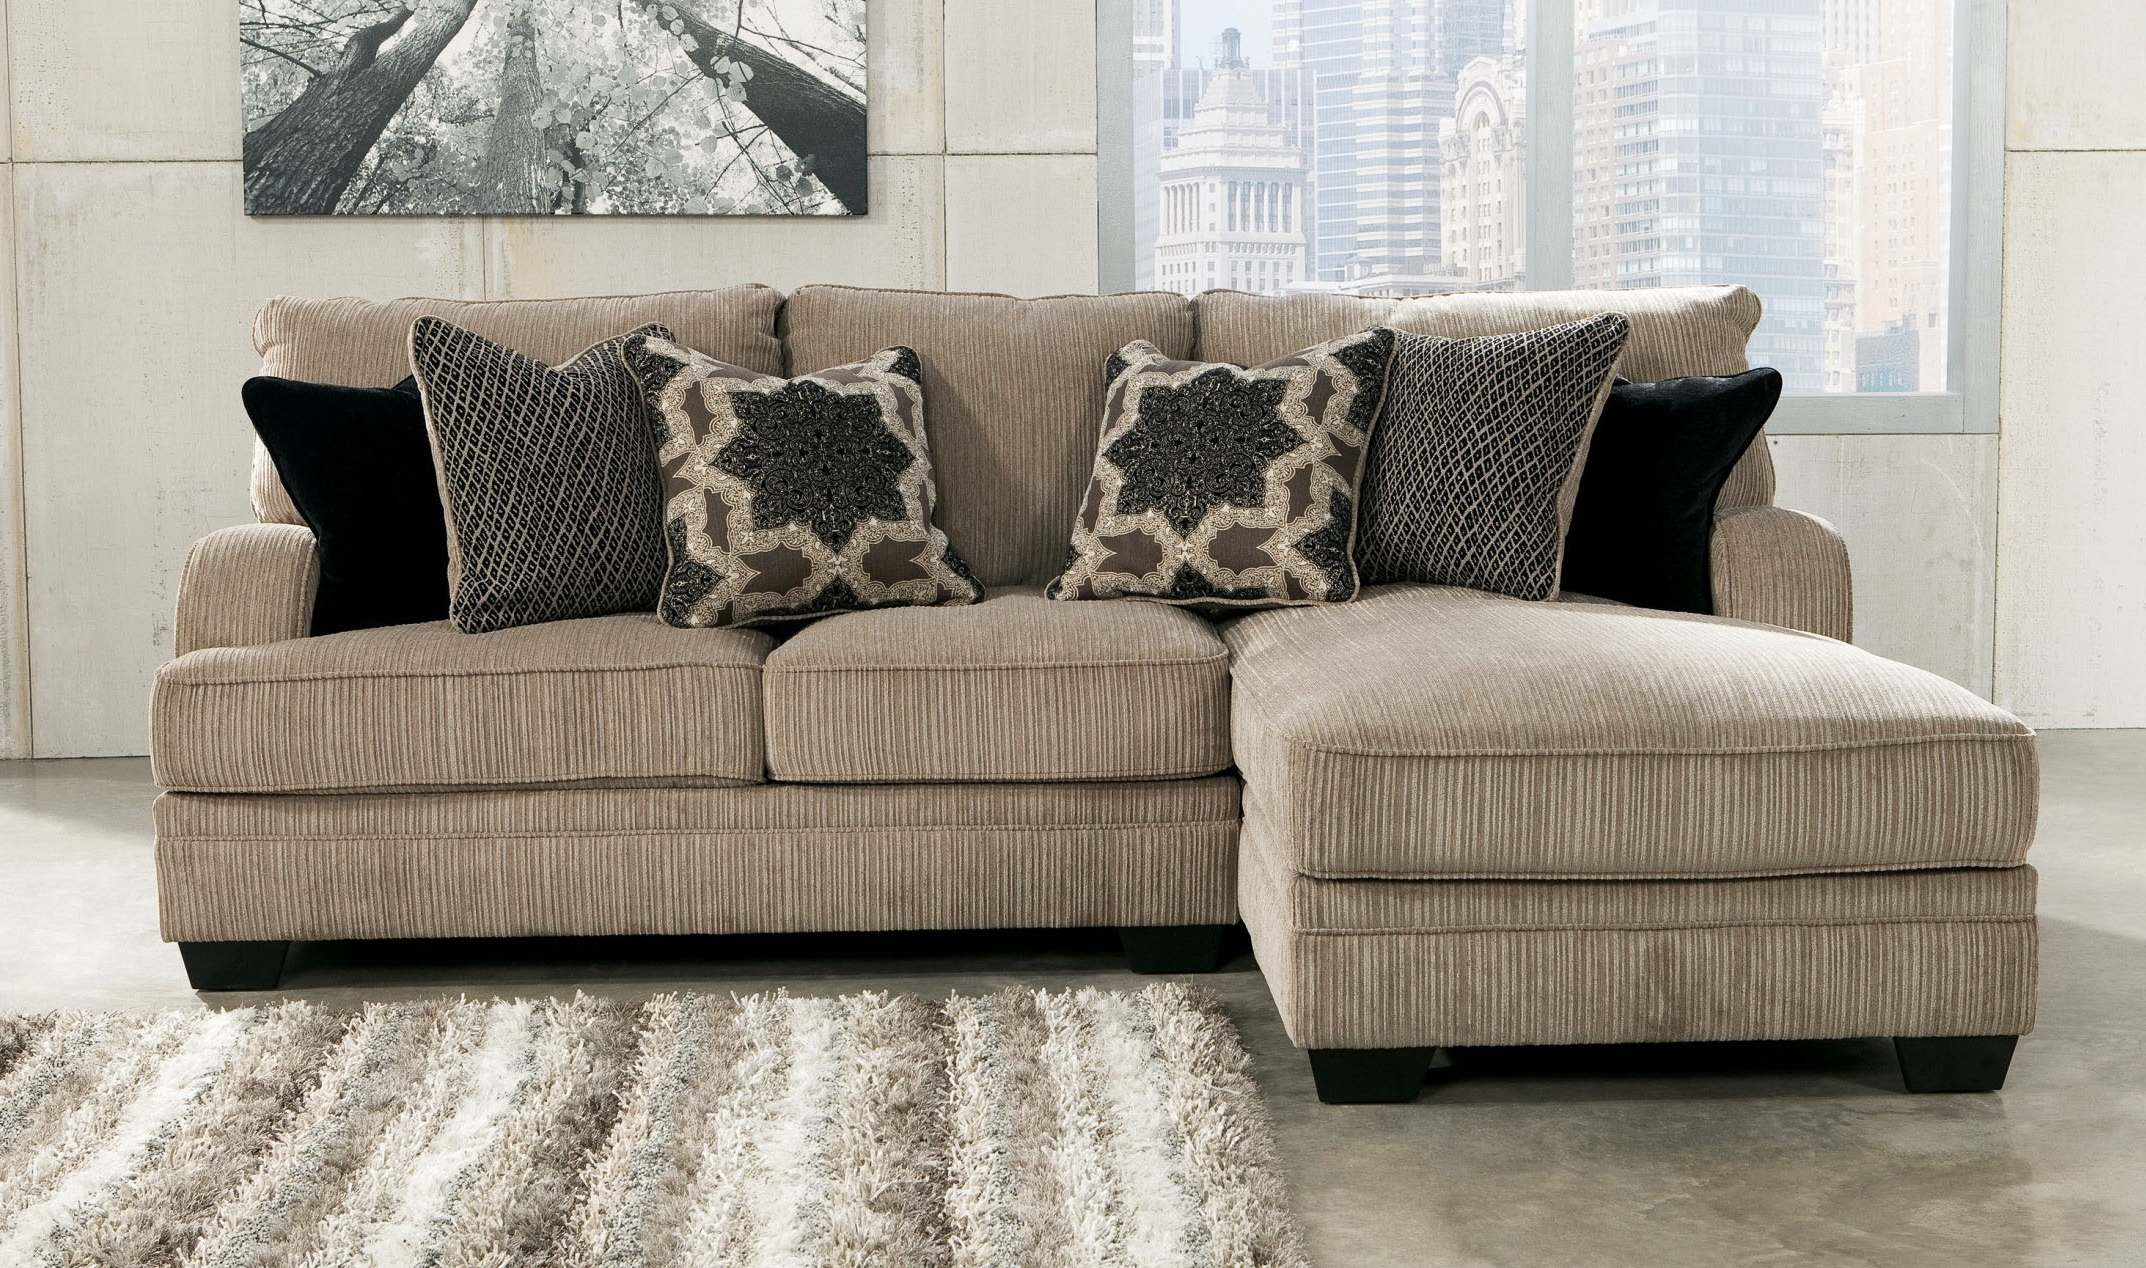 2018 Small Sectional Sofas With Chaise Lounge Pertaining To Luxury Small Sectional Sofa With Chaise Lounge 79 For Stickley (View 1 of 15)